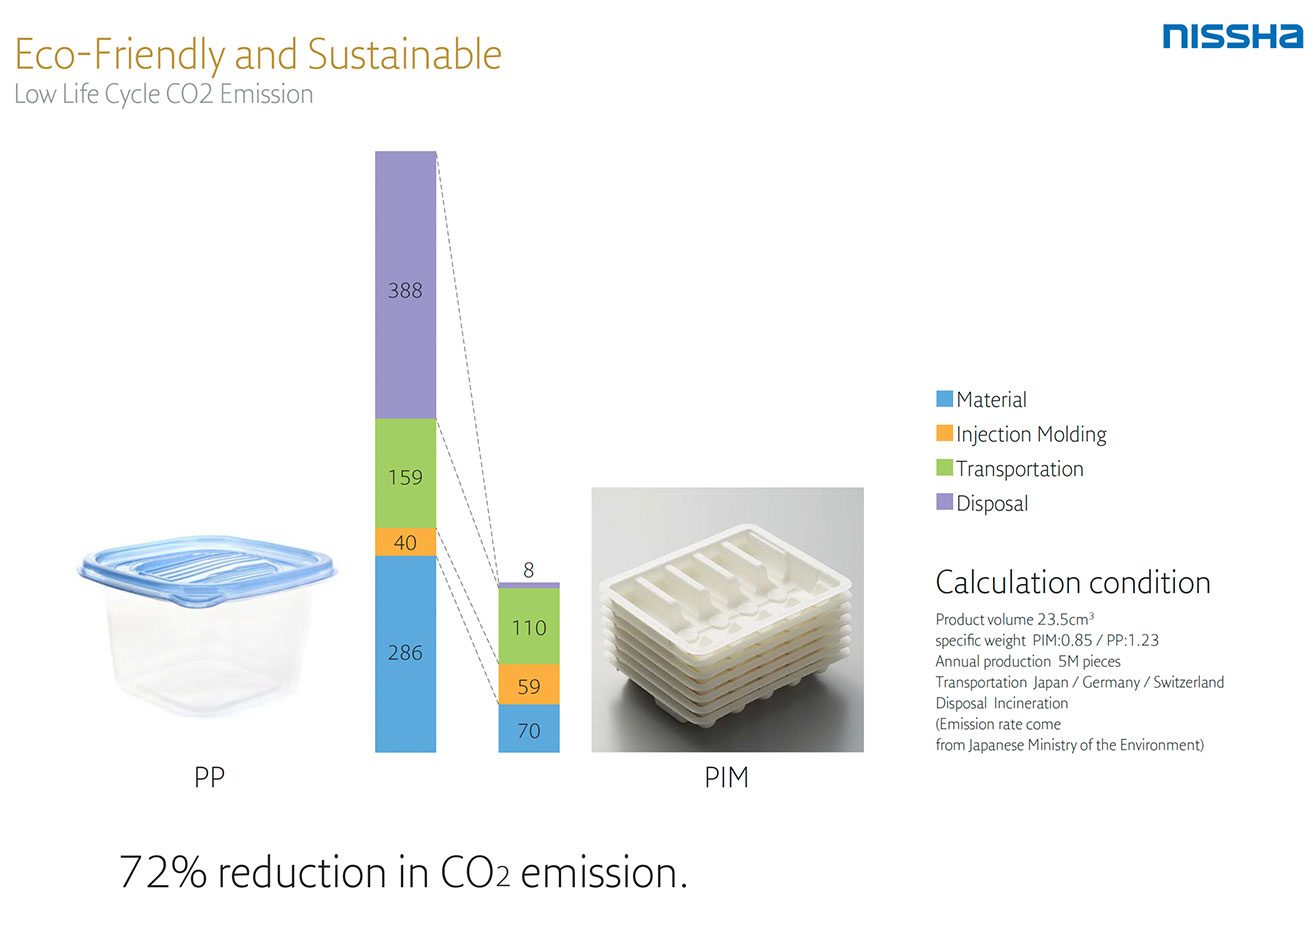 72% reduction in CO2 emission